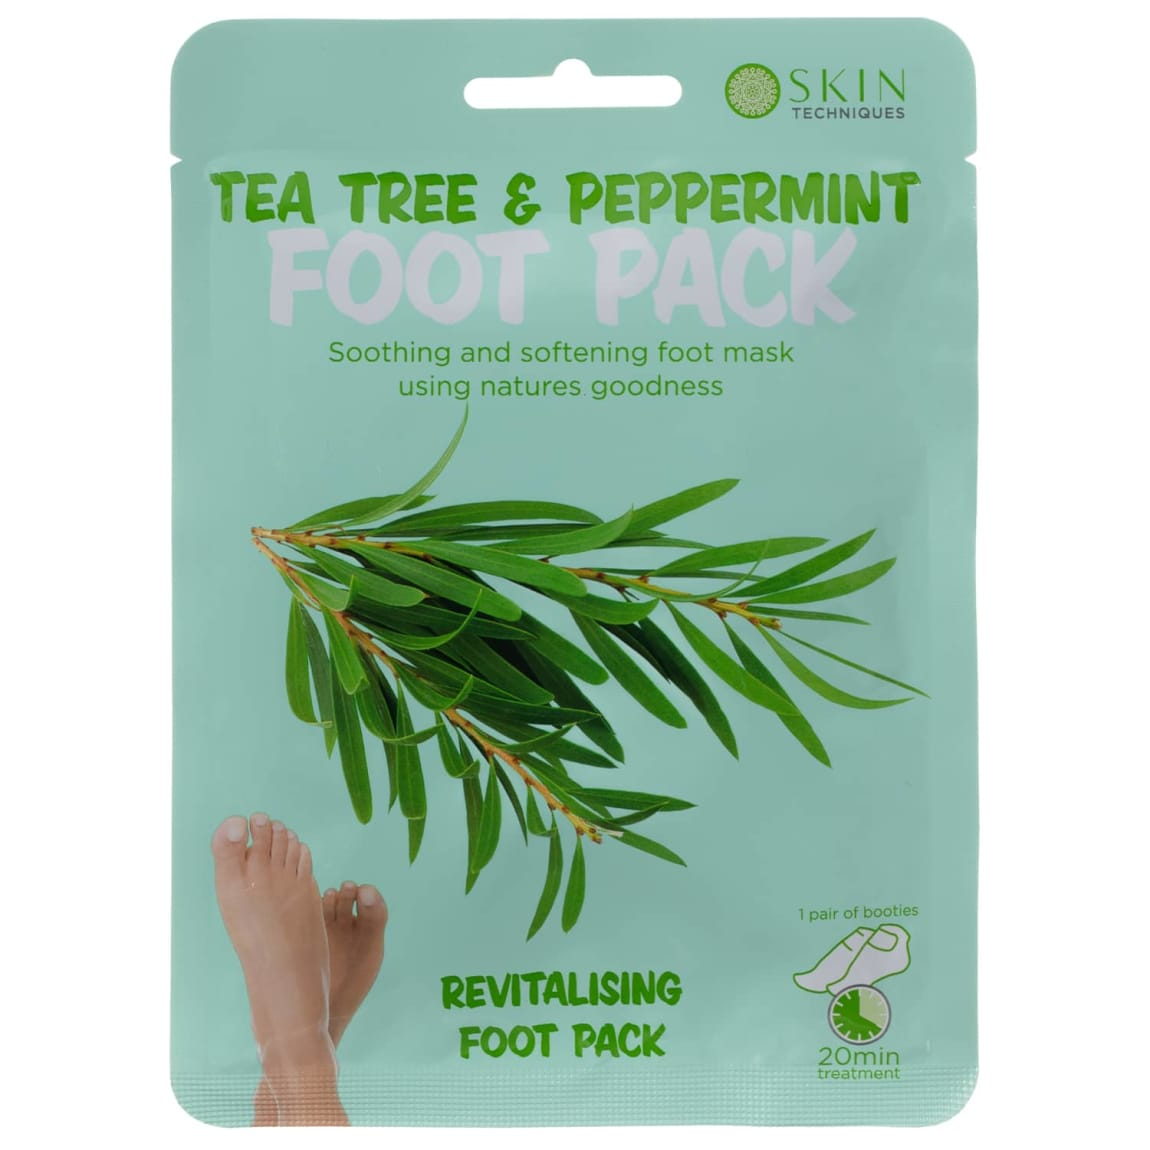 Skin Technique Tea Tree & Peppermint Foot Pack